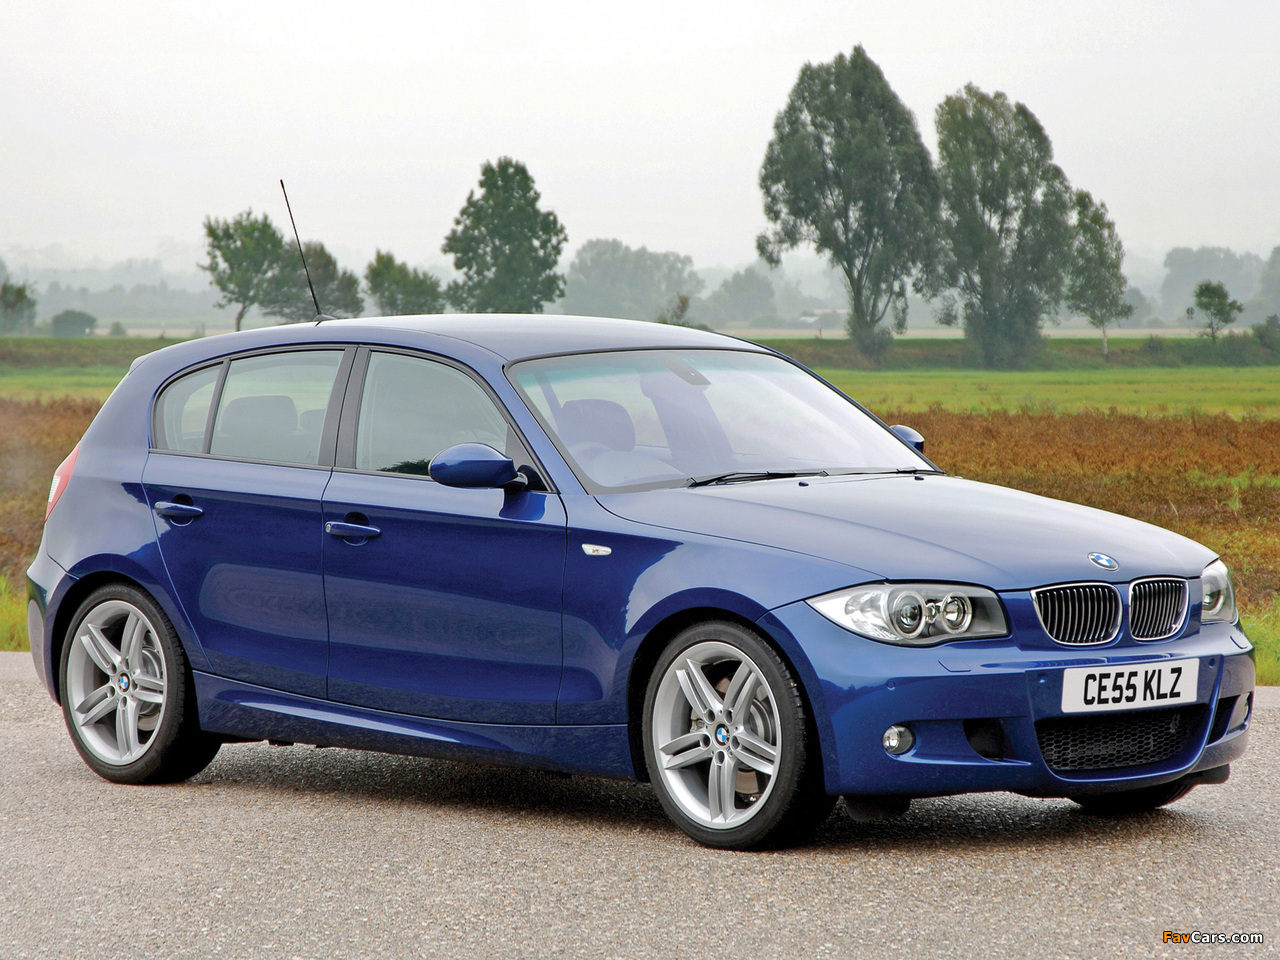 Bmw Sports Car >> BMW 130i 5-door M Sports Package (E87) 2005 images (1280x960)